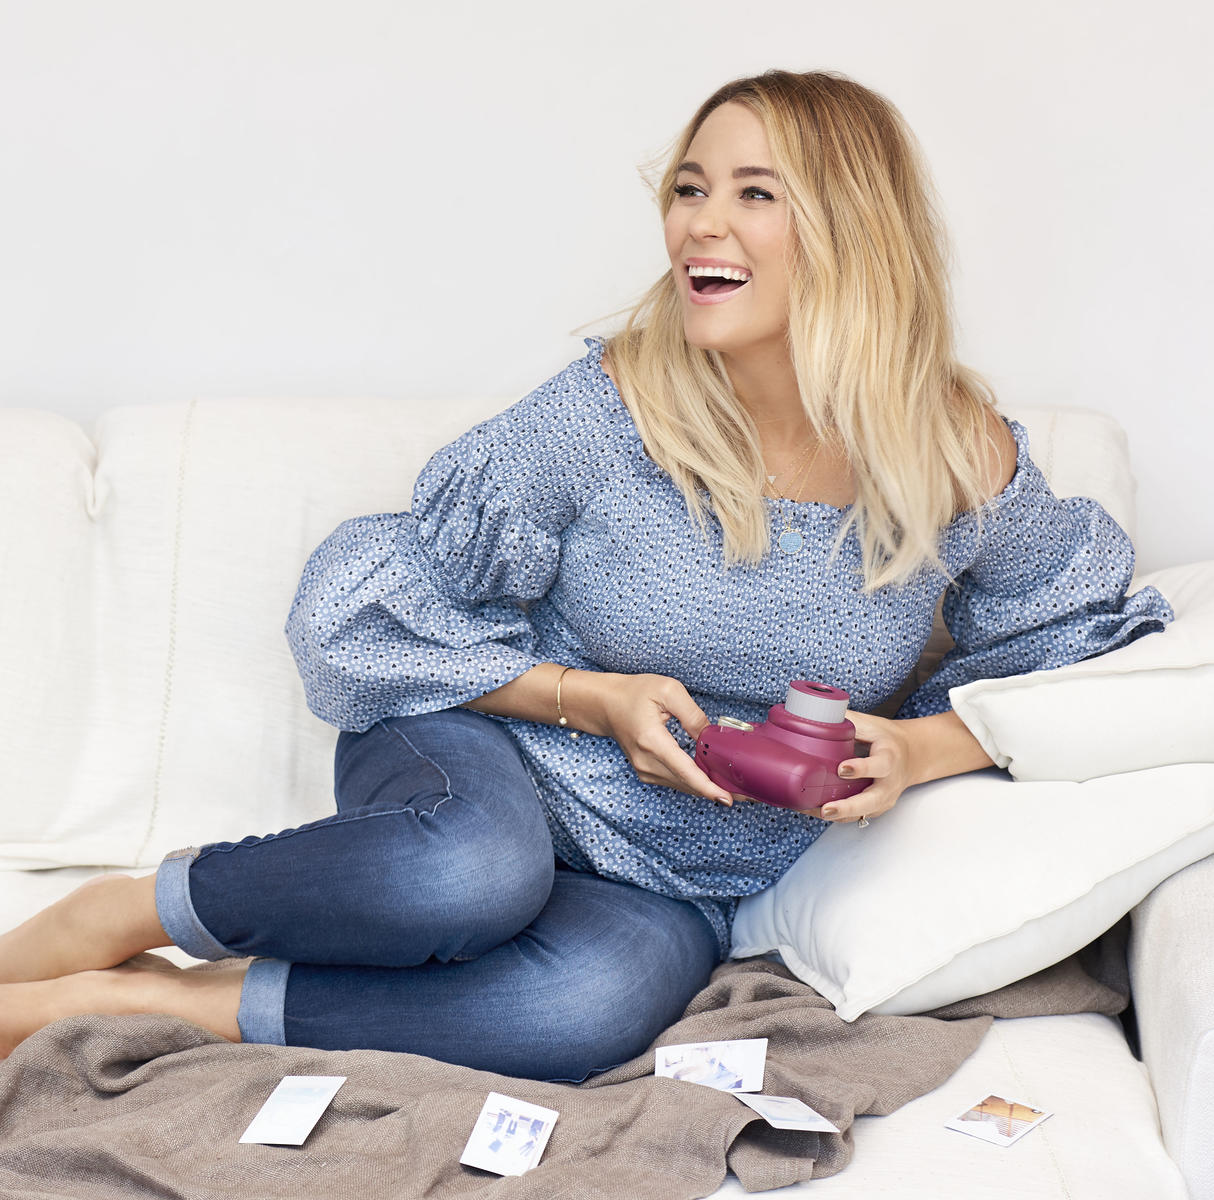 Lauren Conrad Blue Shirt and Pink Polaroid on Couch